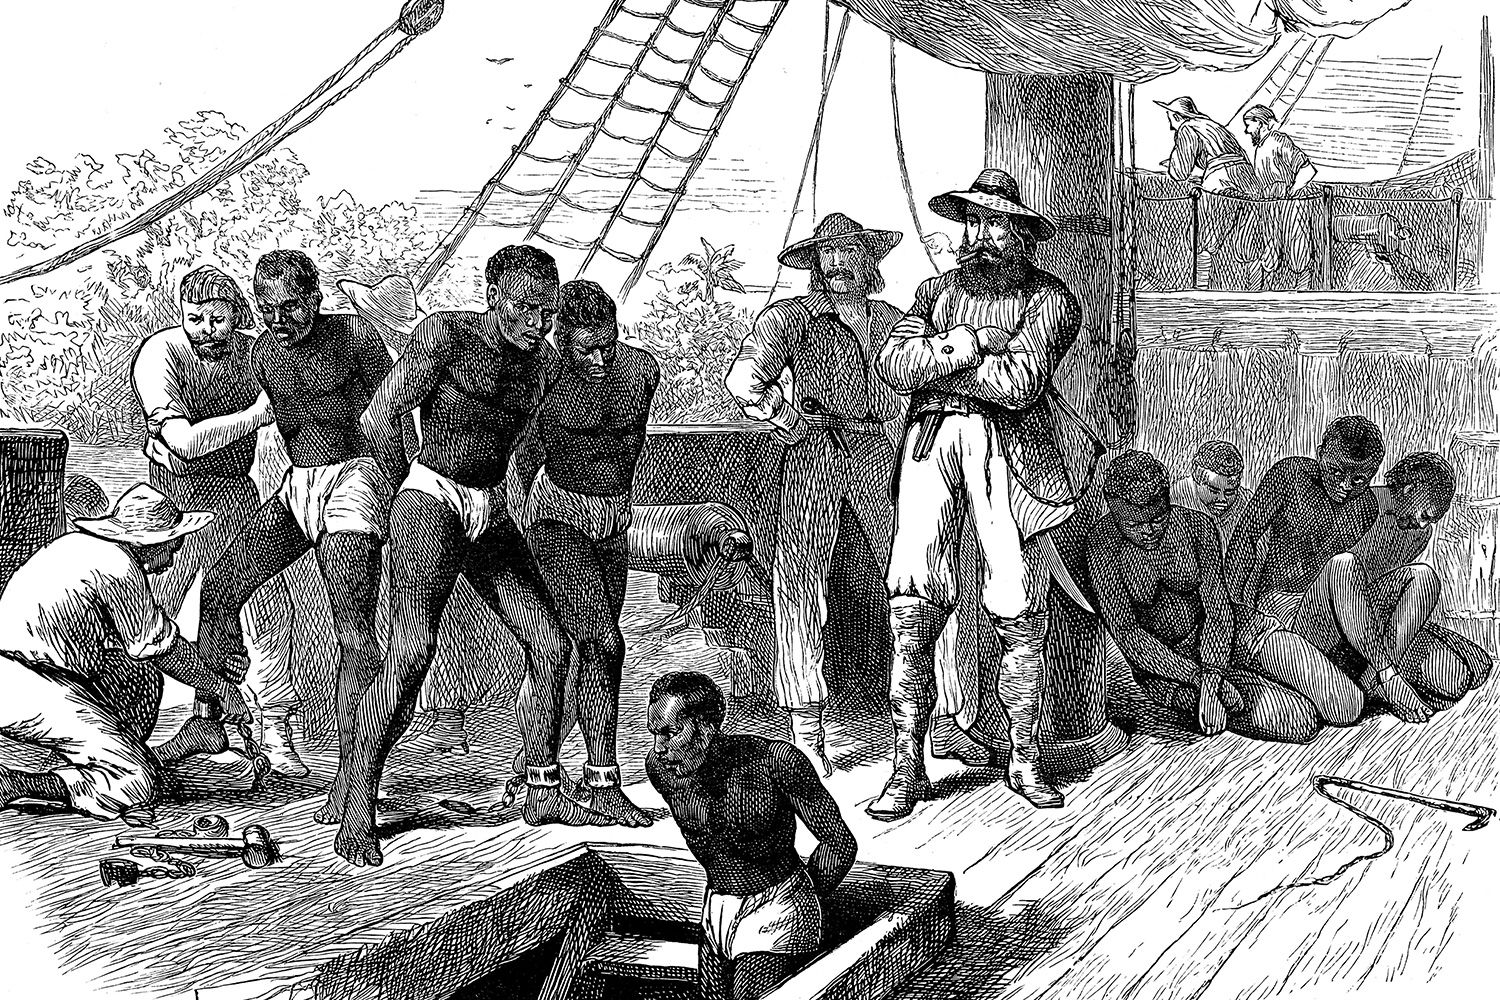 economic and cultural effects of the transatlantic slave trade from the 15th to 19th century From then until the end of the 19th century slave trade began during the 15th century its economic underdevelopment the transatlantic.